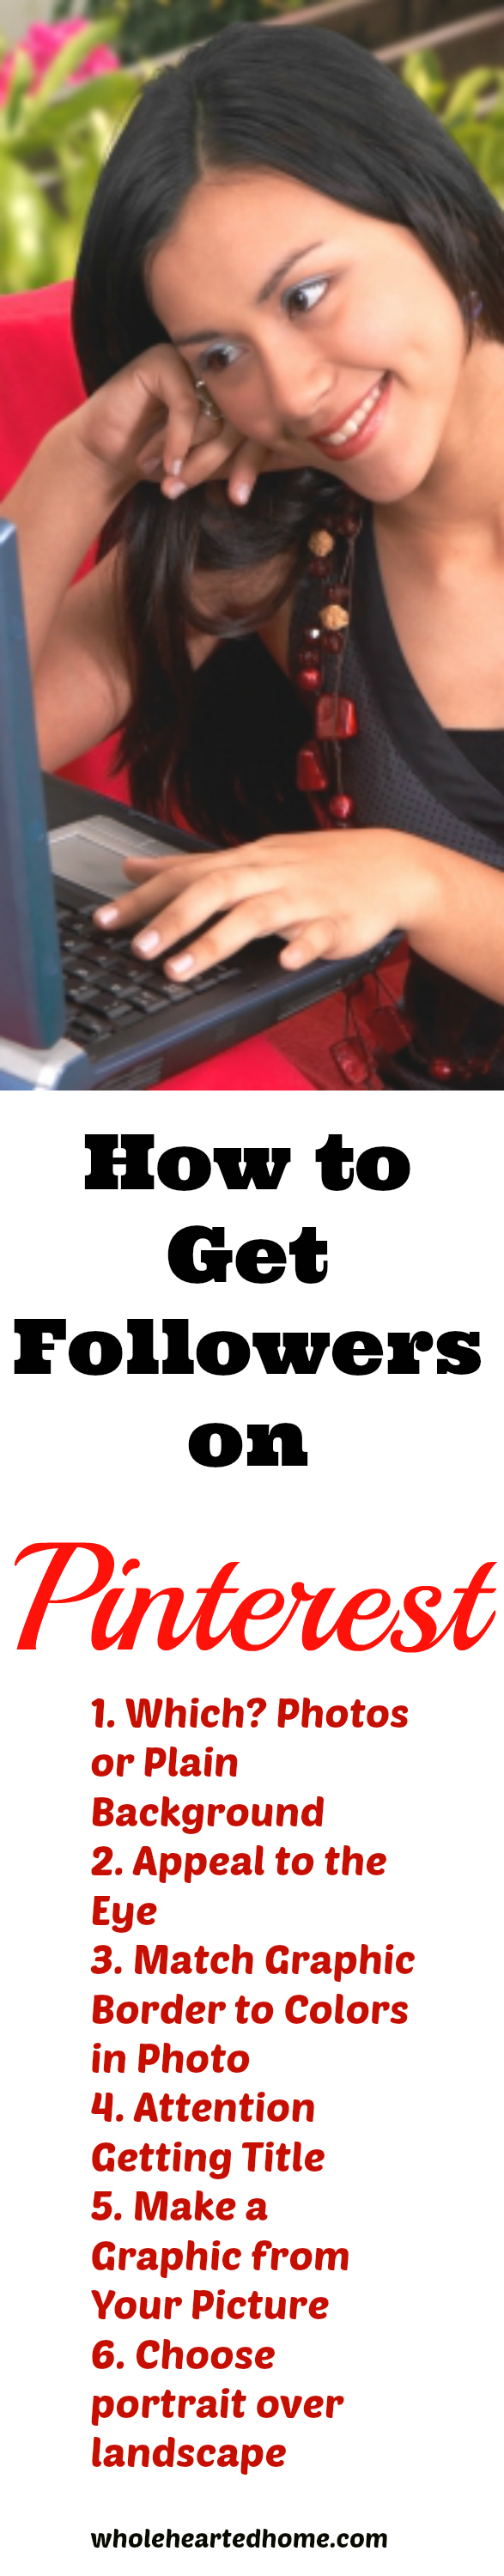 How To Get Followers on Pinterest + WholeHearted Wednesday #98